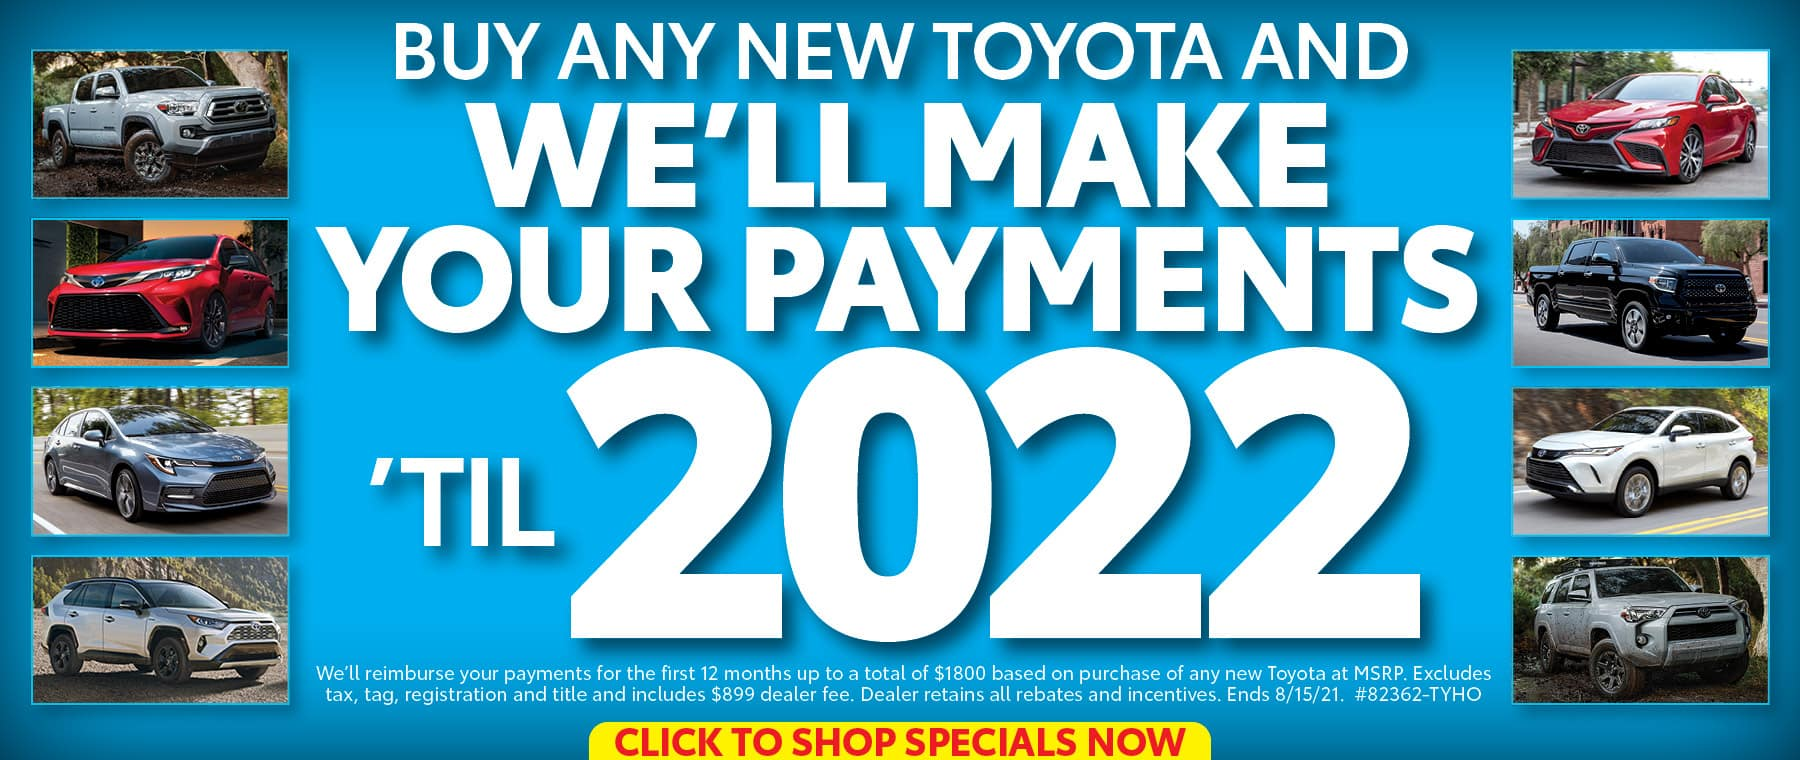 payments 2022